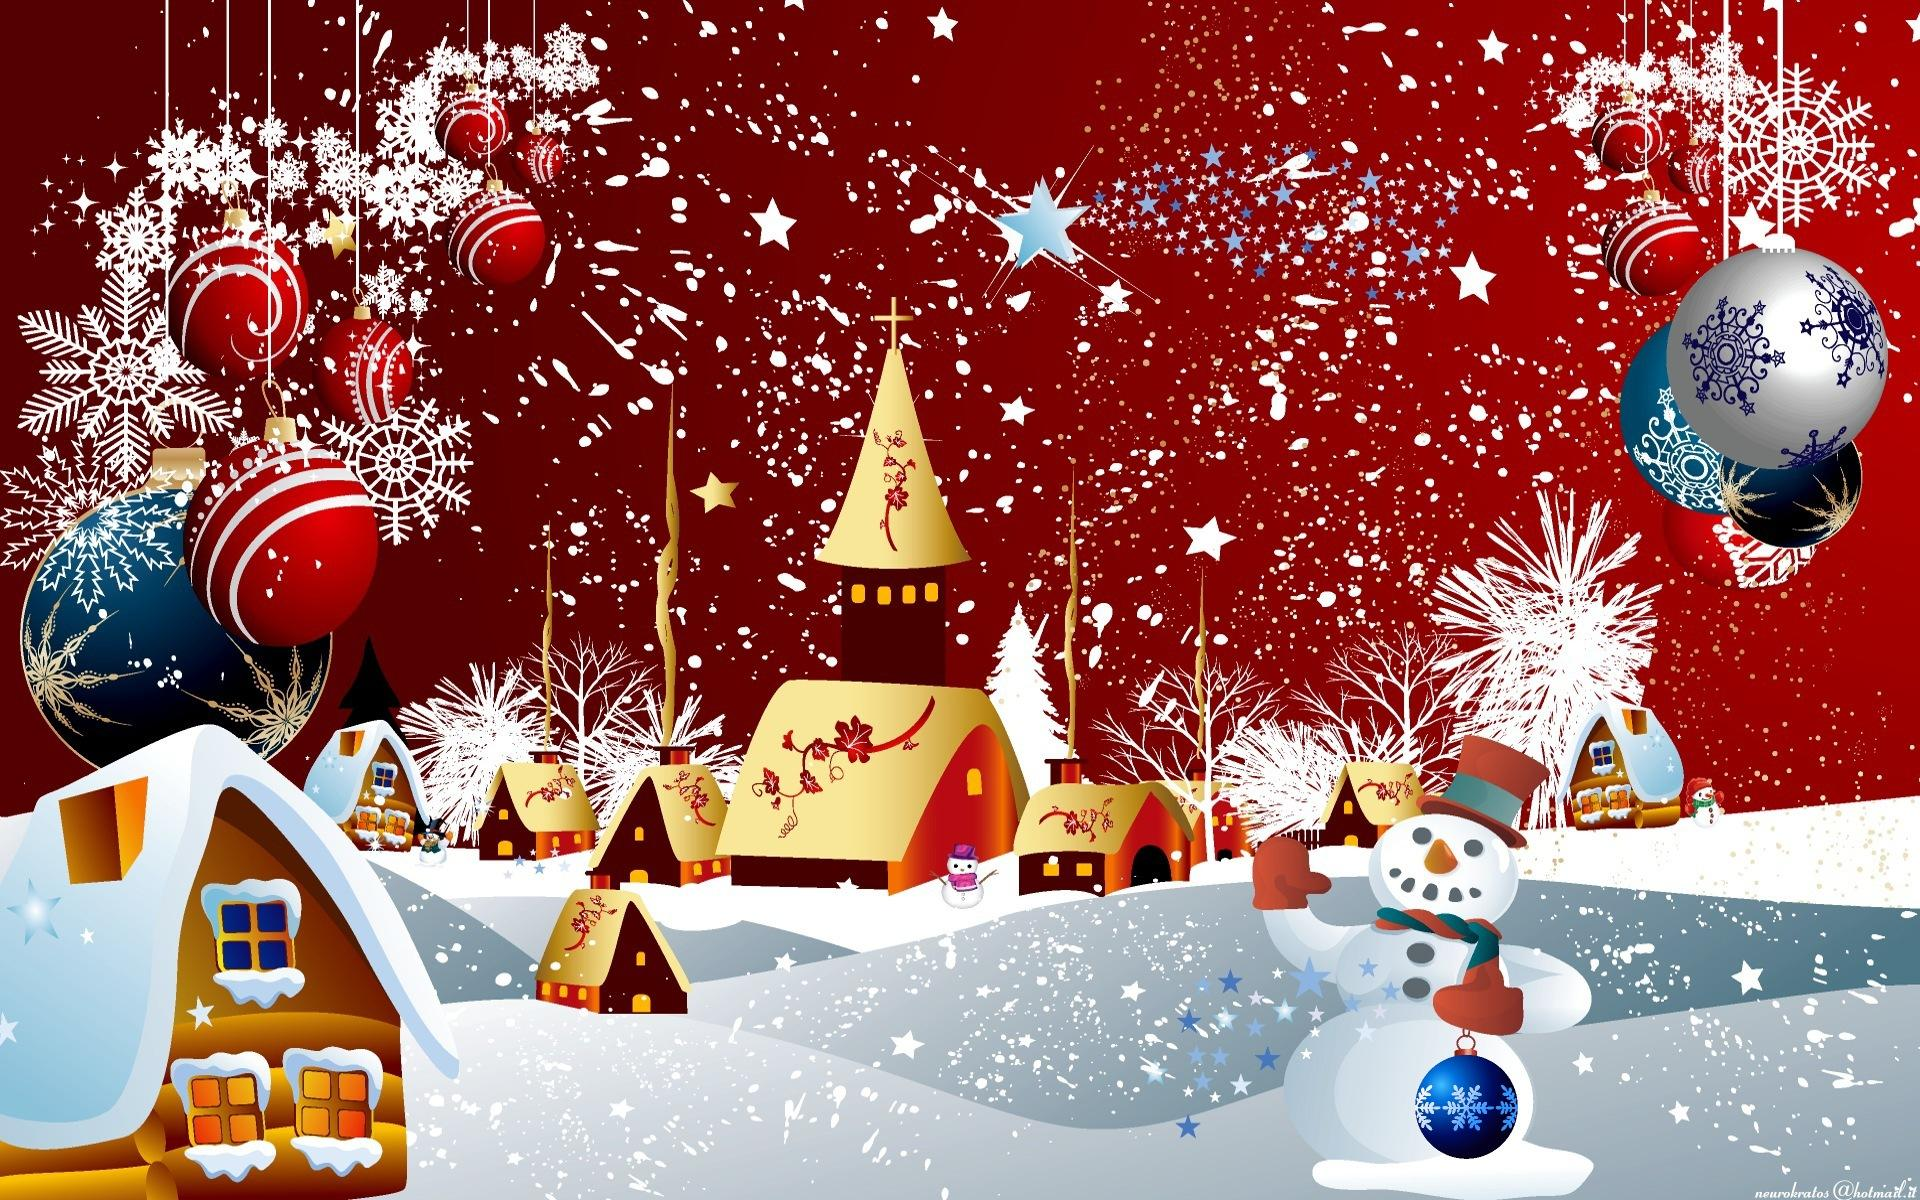 Christmas Images Merry Christmas Images Merry Christmas - Merry Christmas , HD Wallpaper & Backgrounds